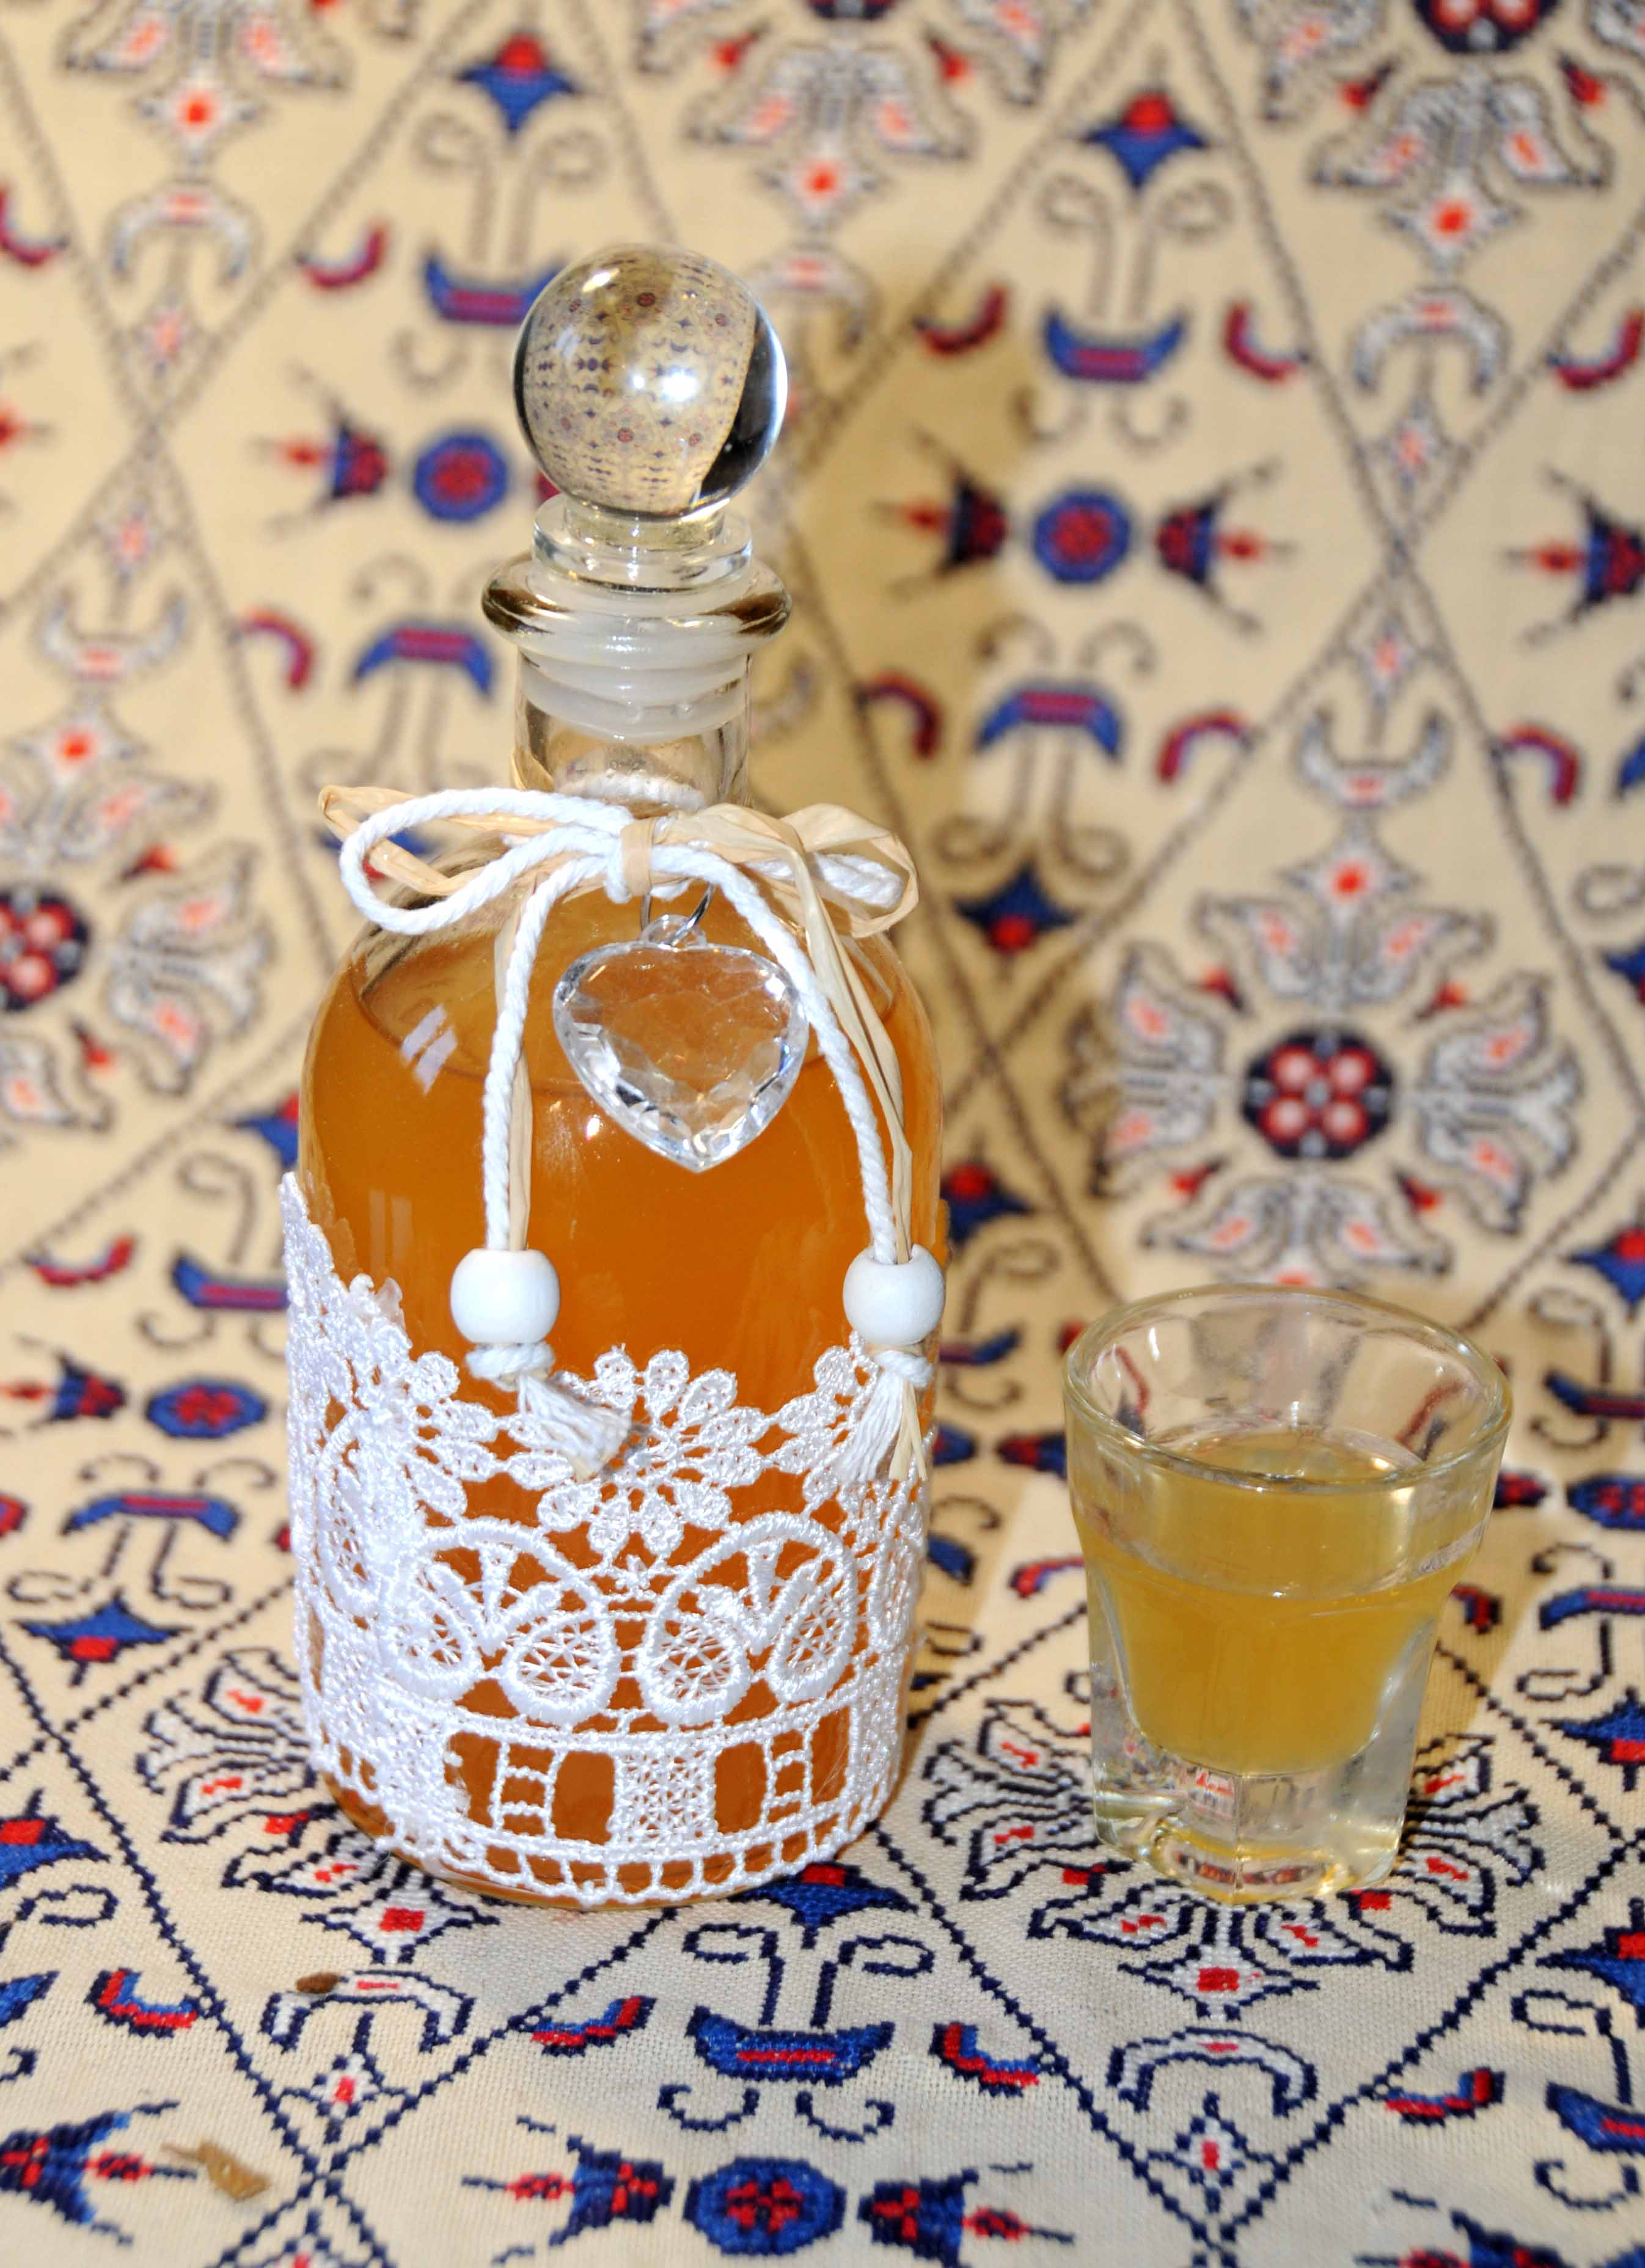 Red Orange Liqueur Photo by Thanasis Bounas